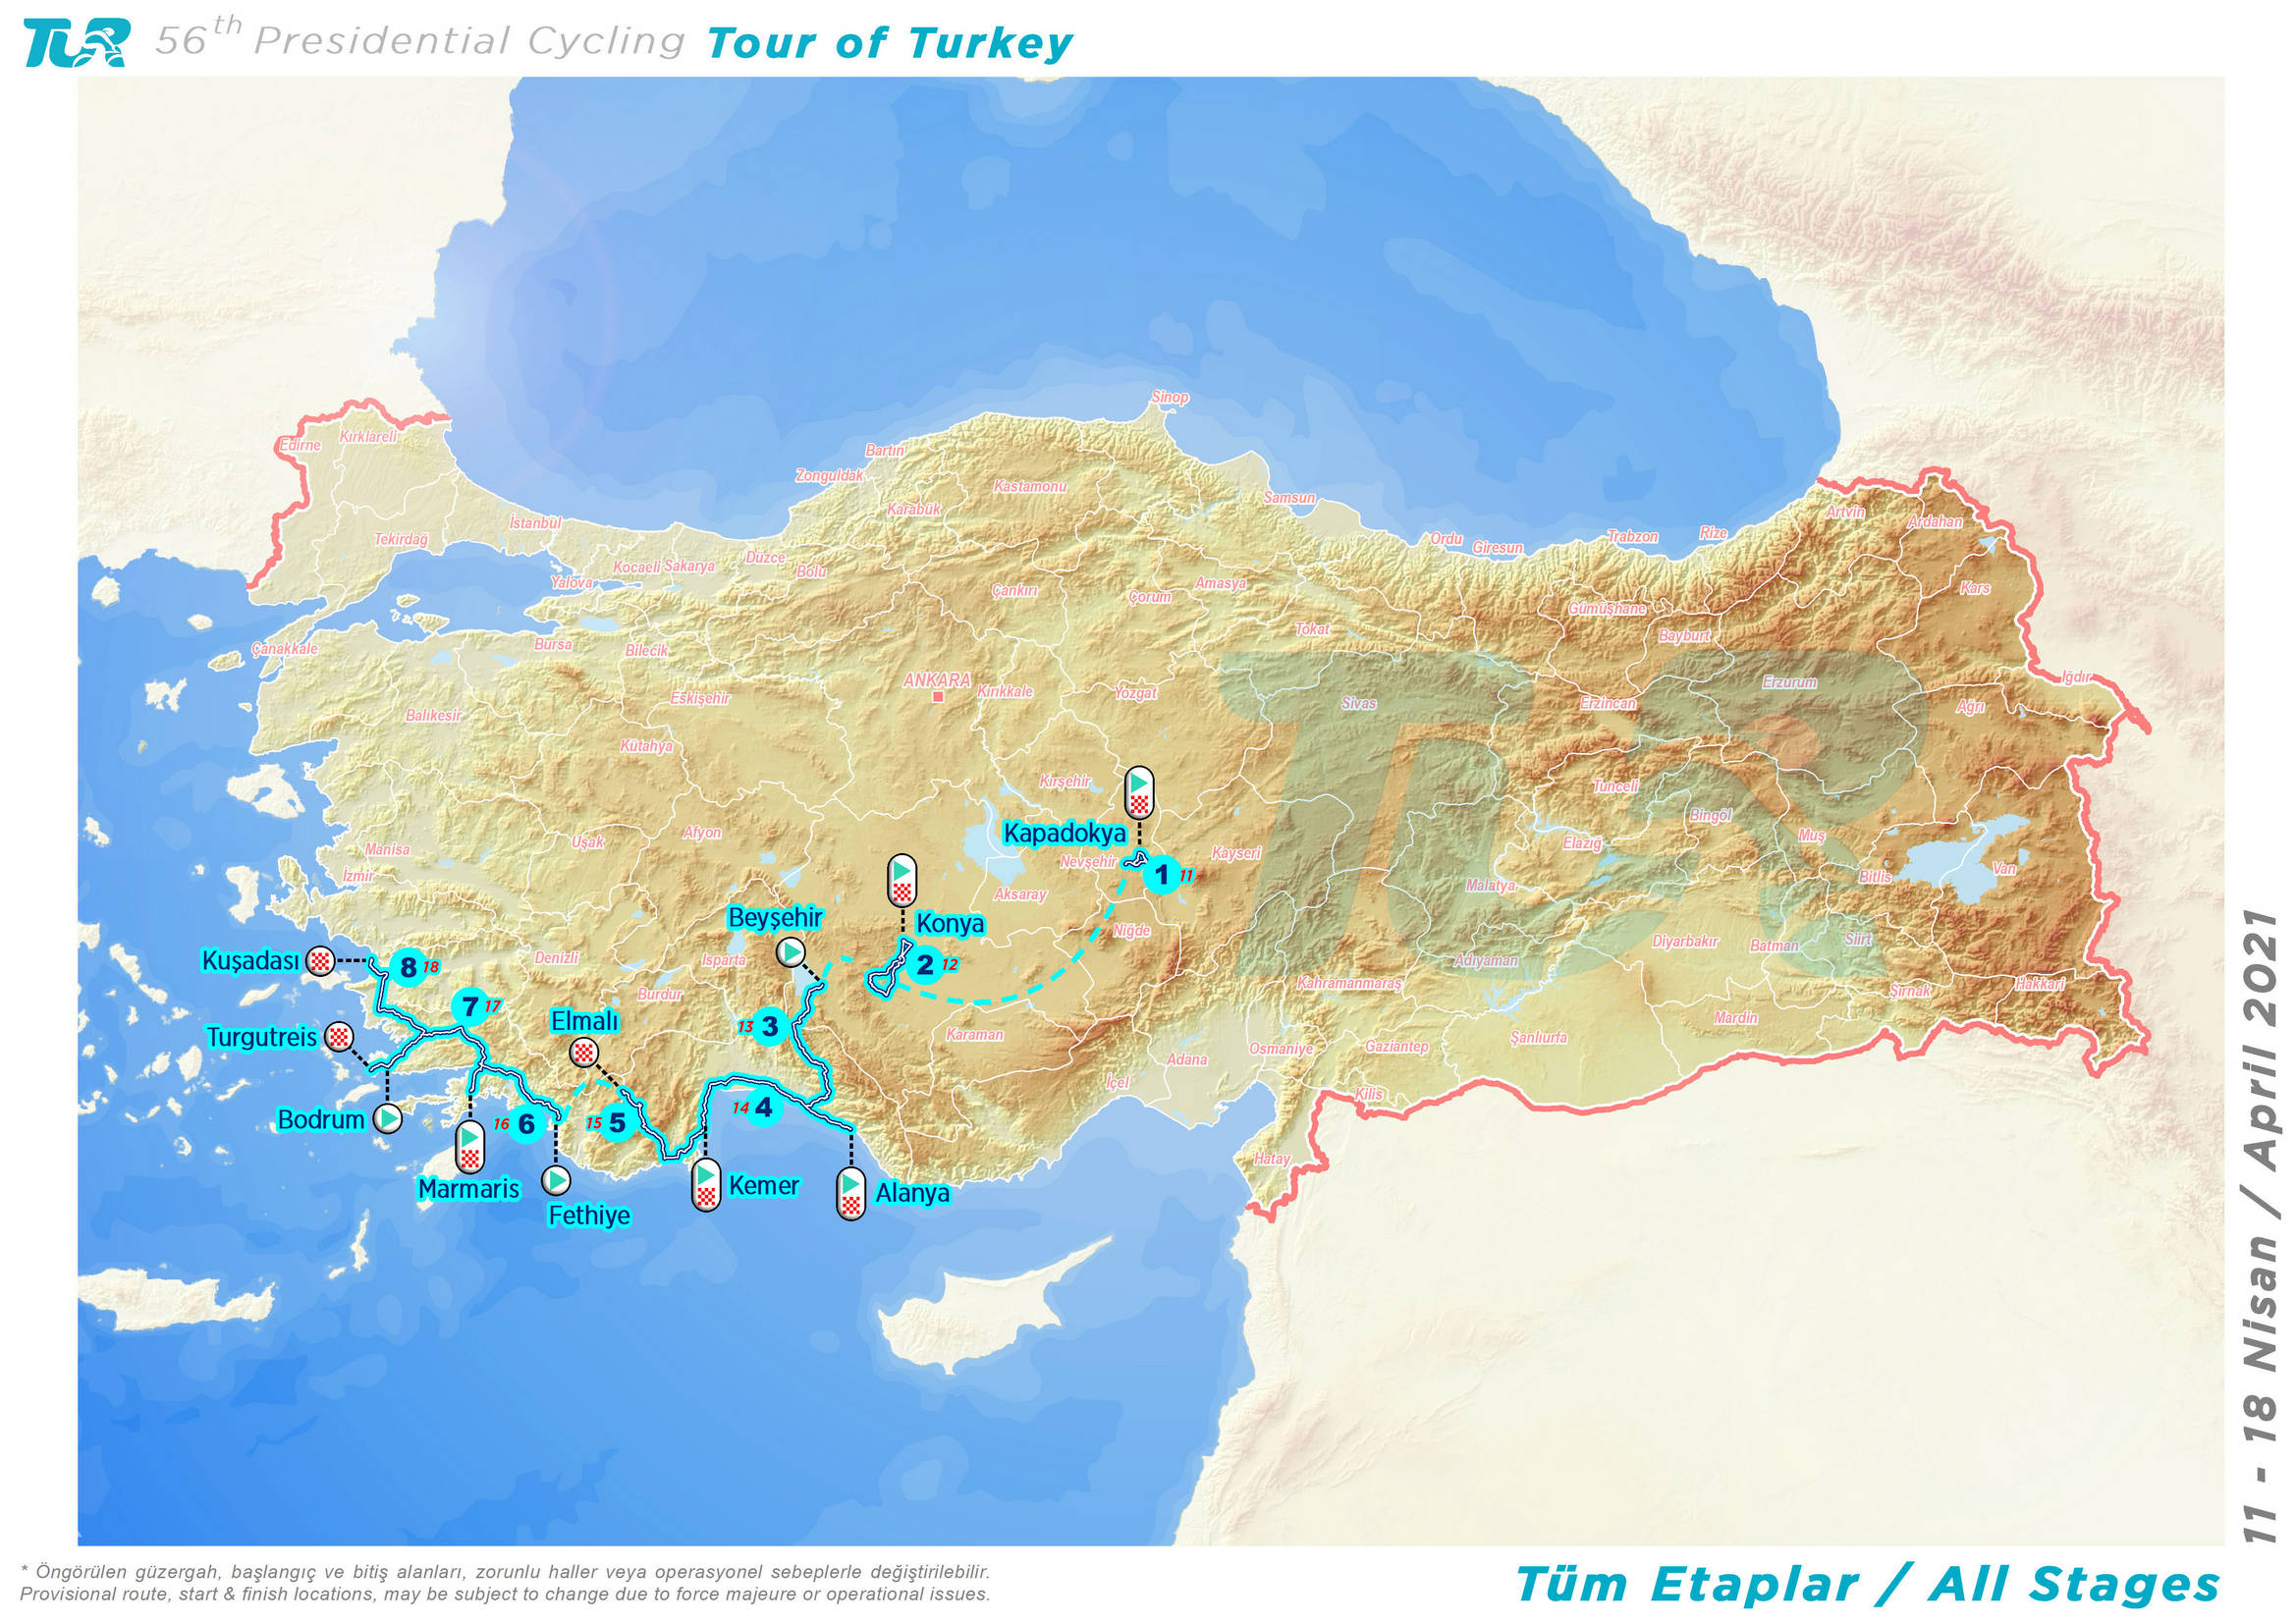 Presidential Cycling Tour of Turkey Map